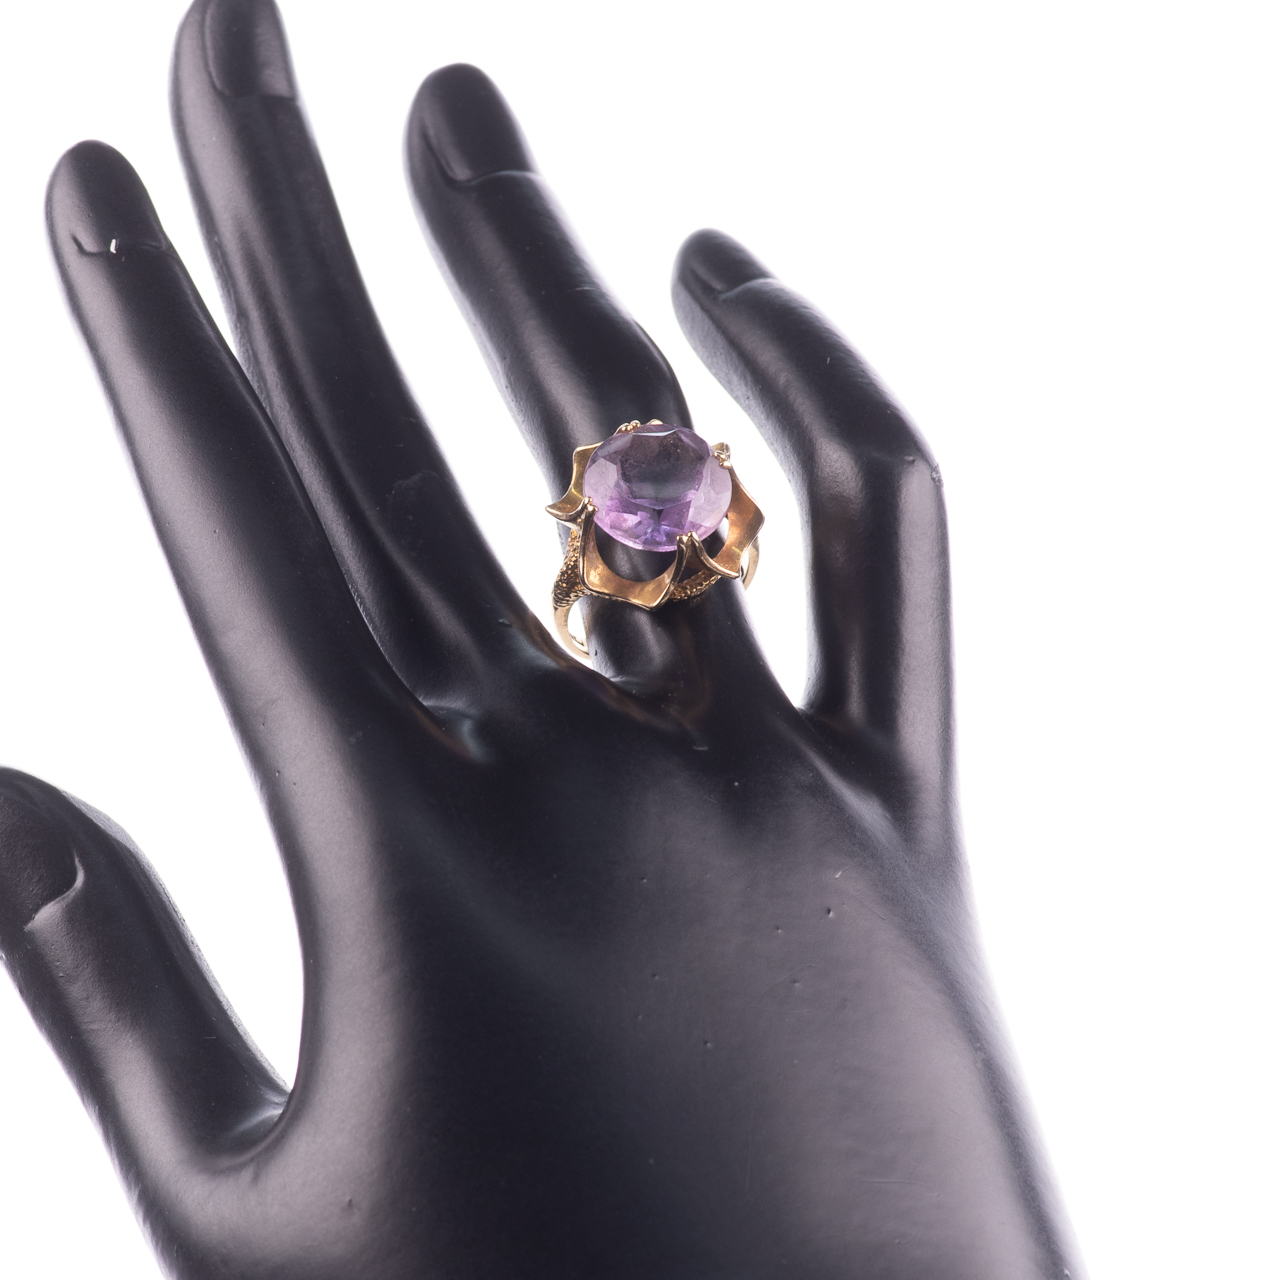 9ct Gold 6.45ct Amethyst Ring London 1974 - Image 2 of 8